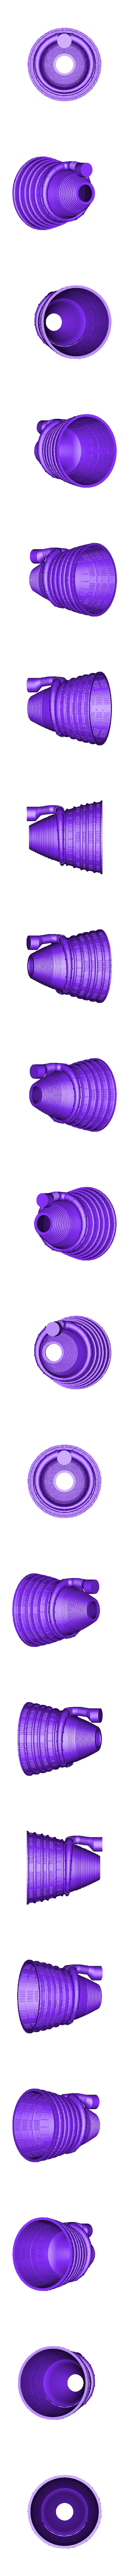 enginebell.stl Download free STL file Apollo F1 Rocket Engine on Stand • 3D print object, monsenrm